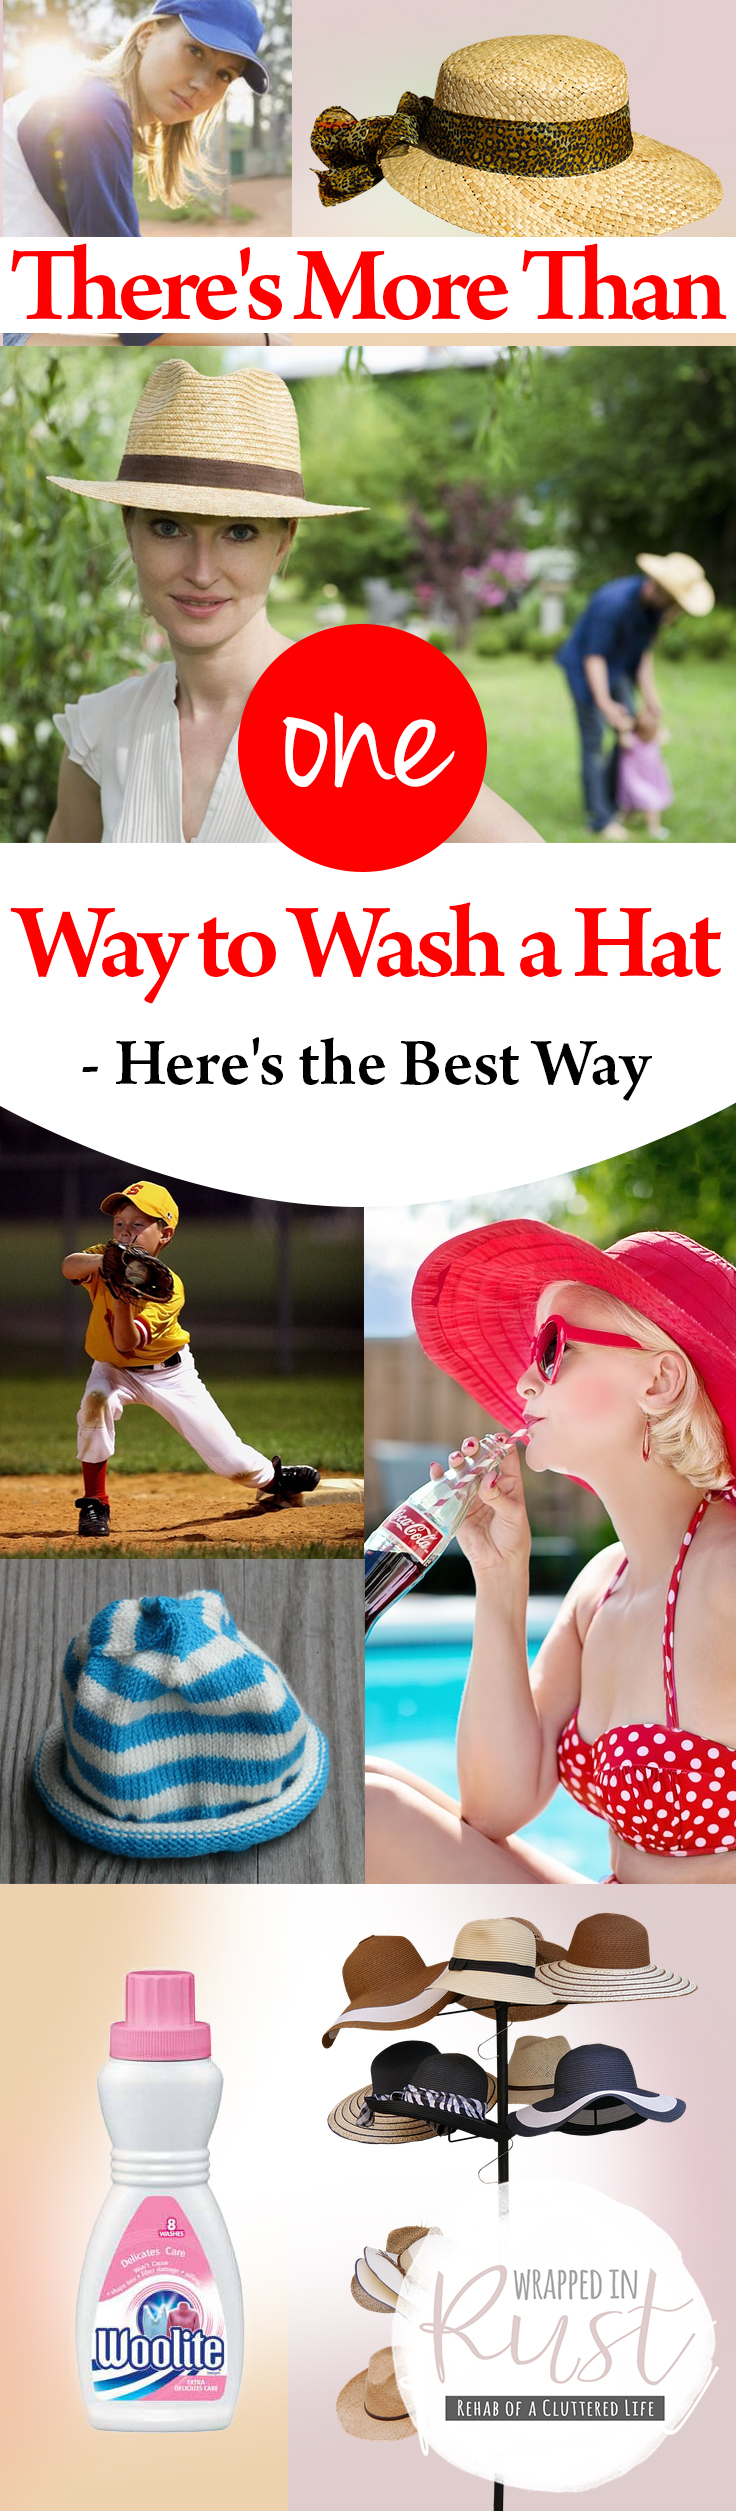 how to wash a hat in the washing machine